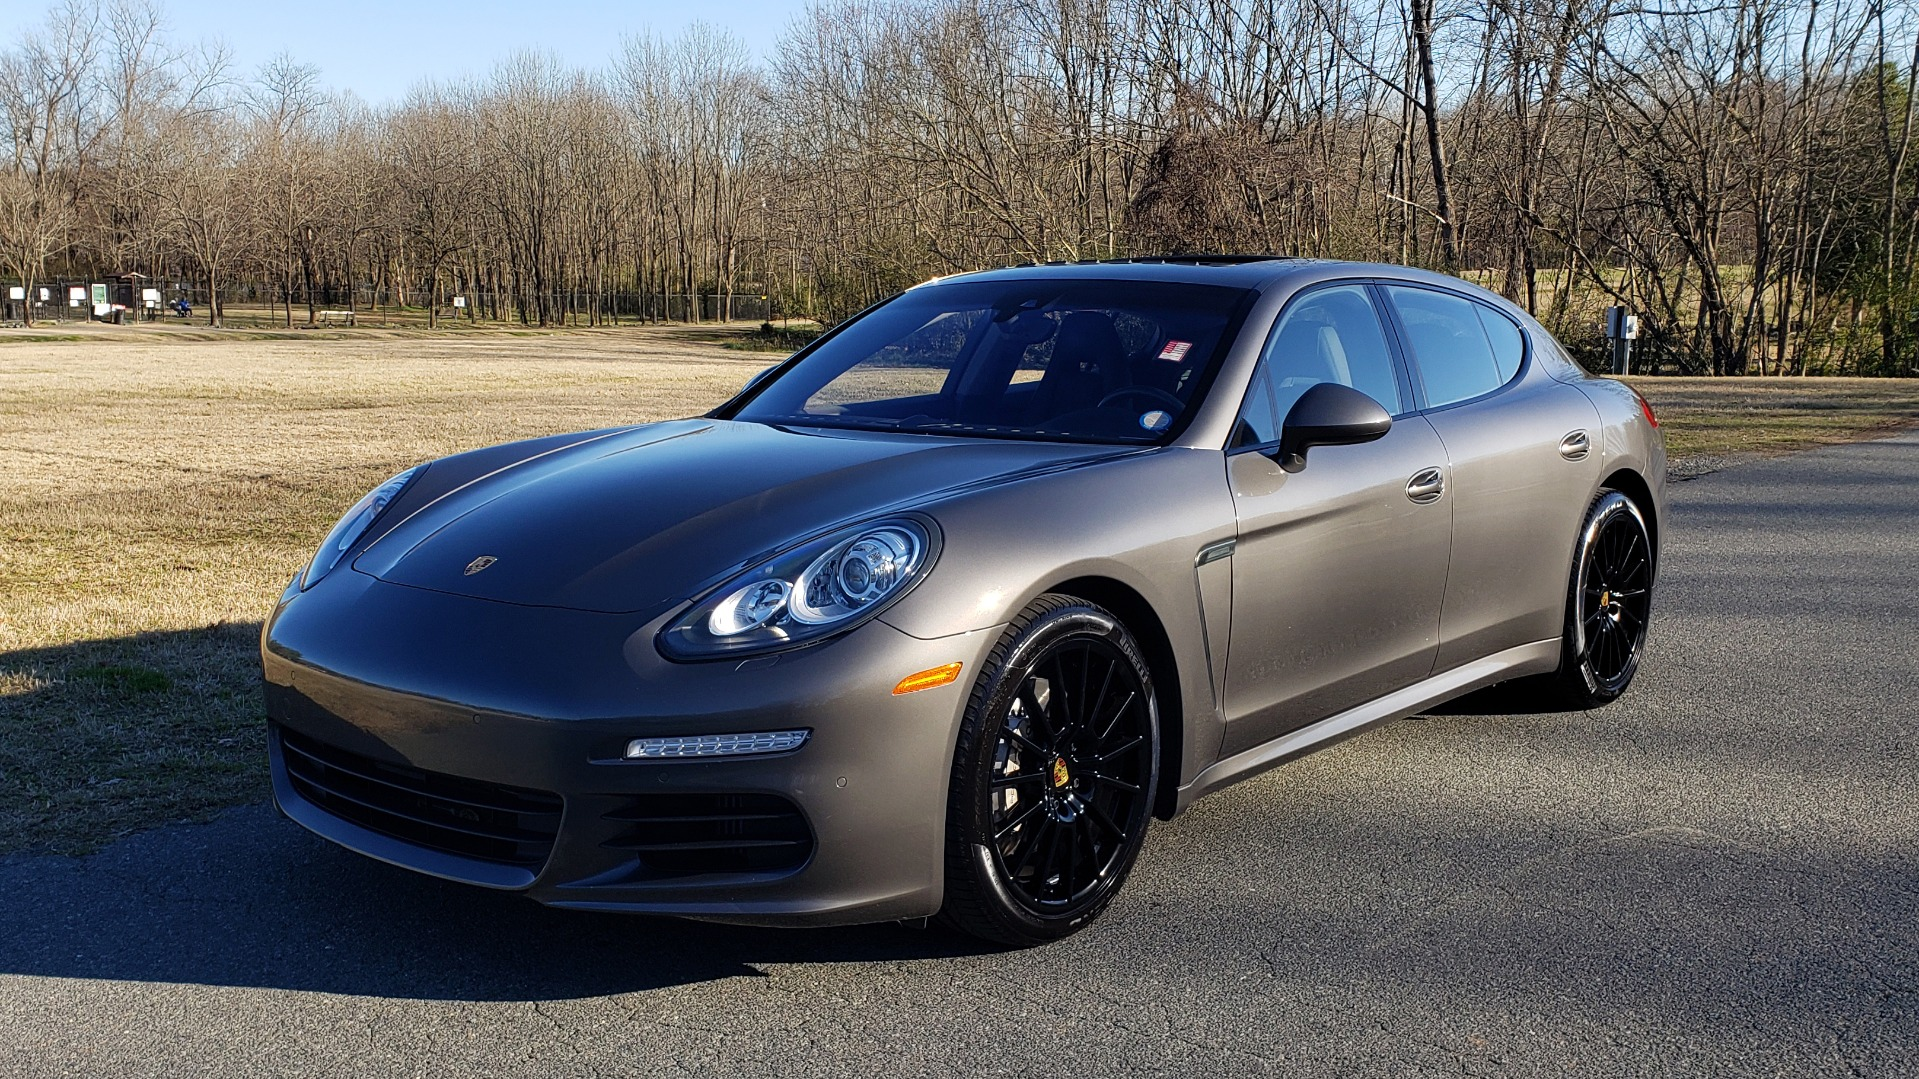 Used 2016 Porsche PANAMERA S / TURBO V6 / PDK / NAV / BOSE / SNRF / LDW / REARVIEW for sale Sold at Formula Imports in Charlotte NC 28227 30